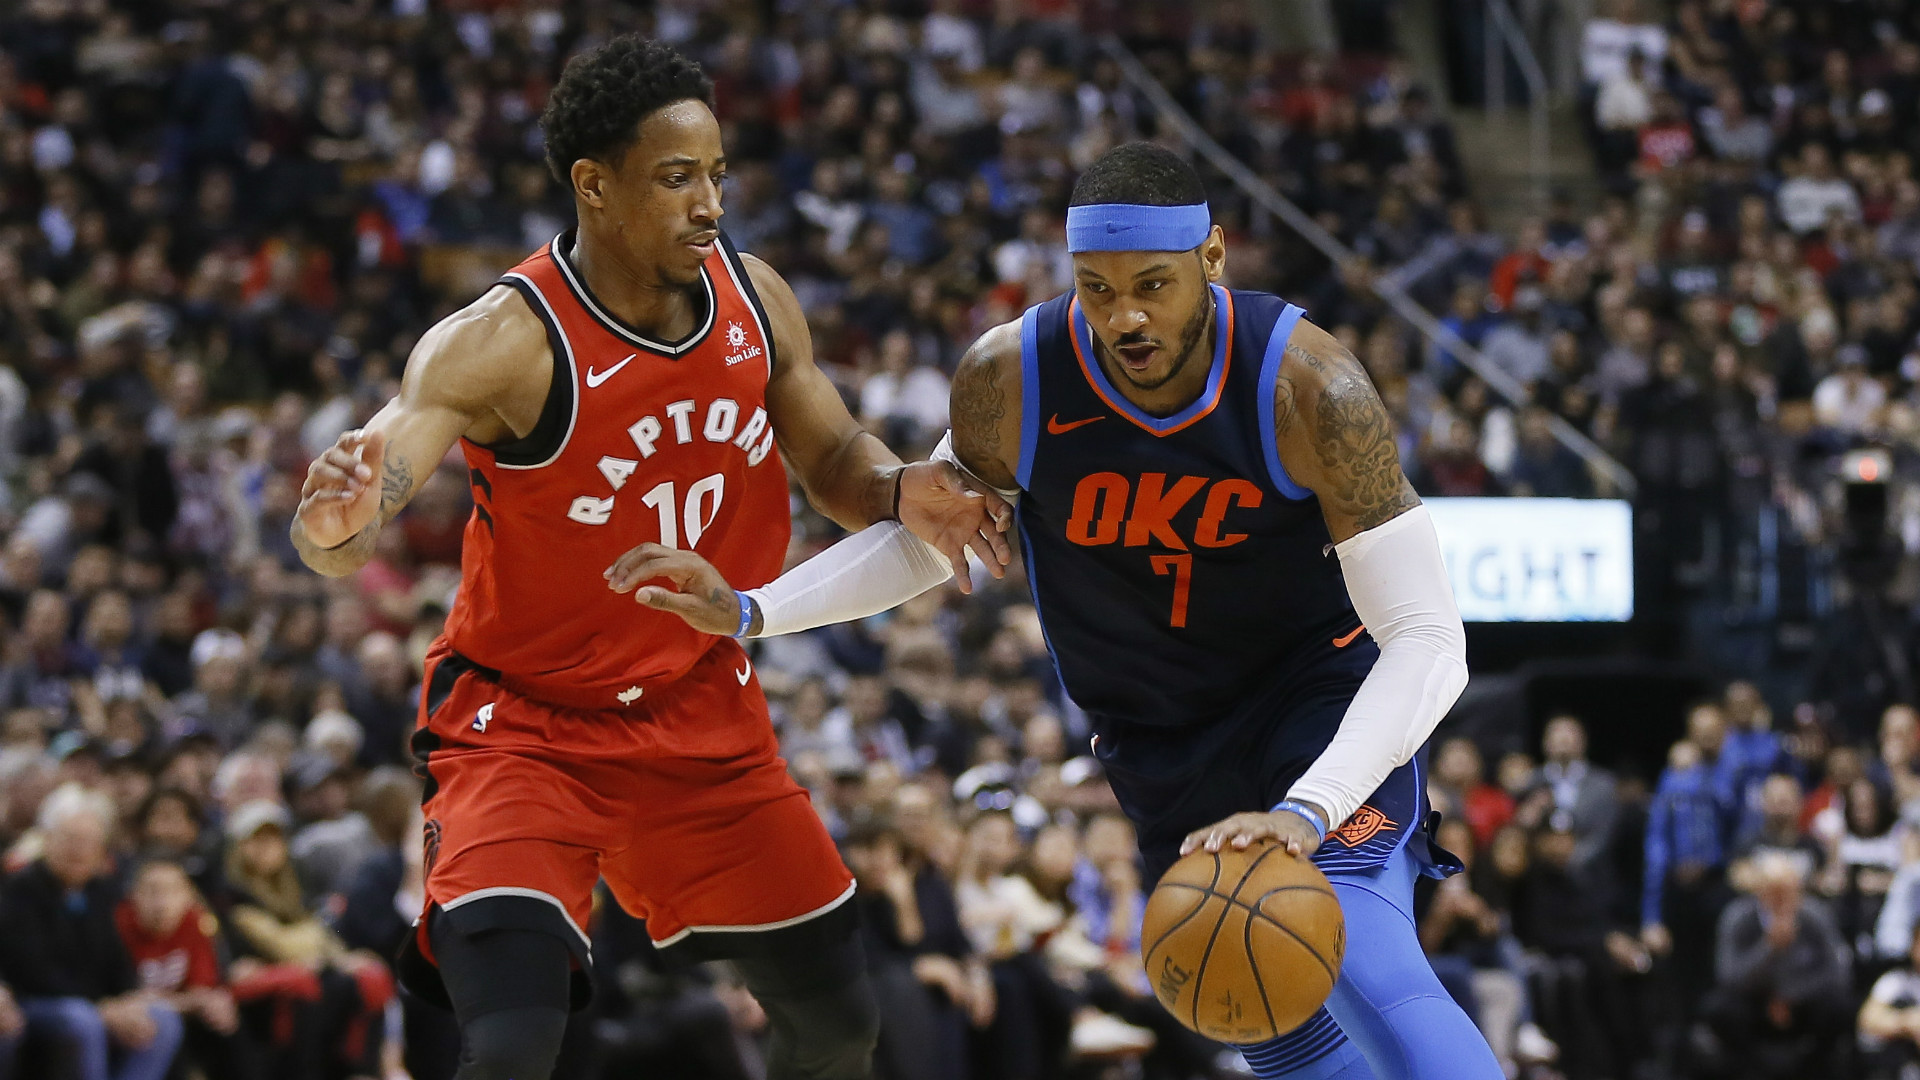 Thunder End Raptors' 11-Game Streak